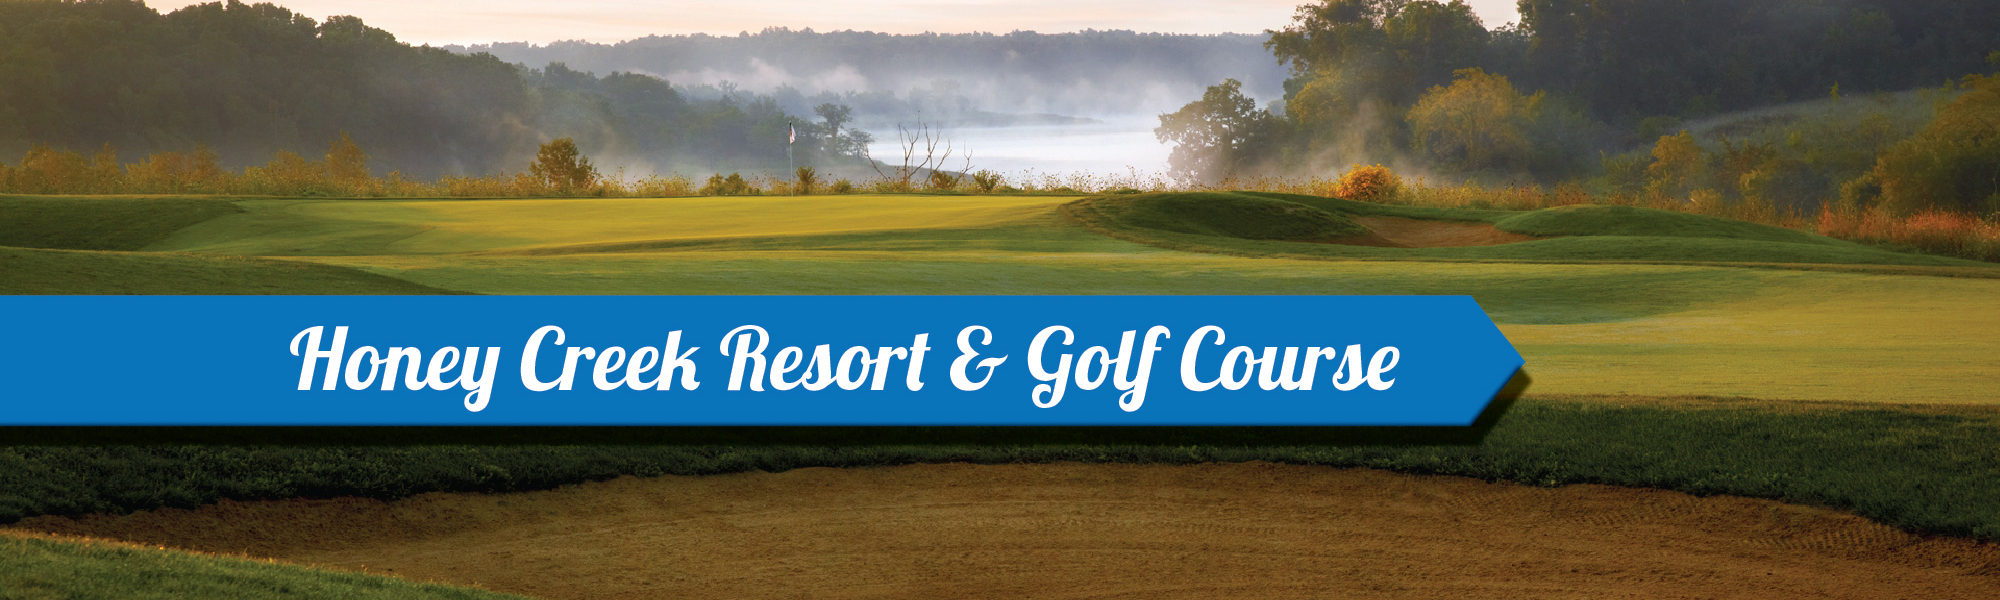 Central Iowa Tourism Region | HoneyCreek